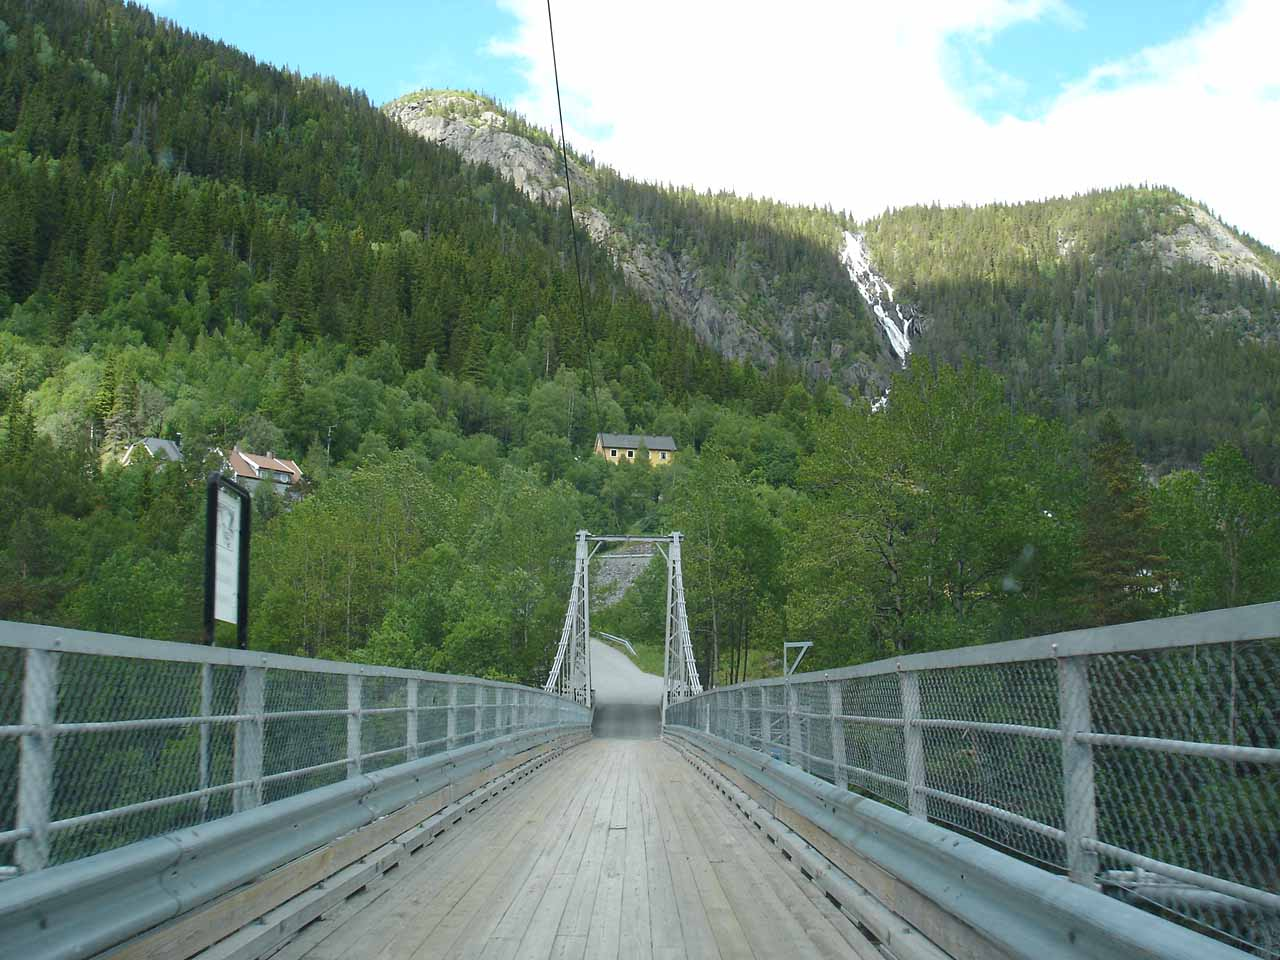 At least over an hour's drive earlier, we had passed through the town of Rjukan, which was the detour we took prior to showing up at the quiet Setesdal Valley